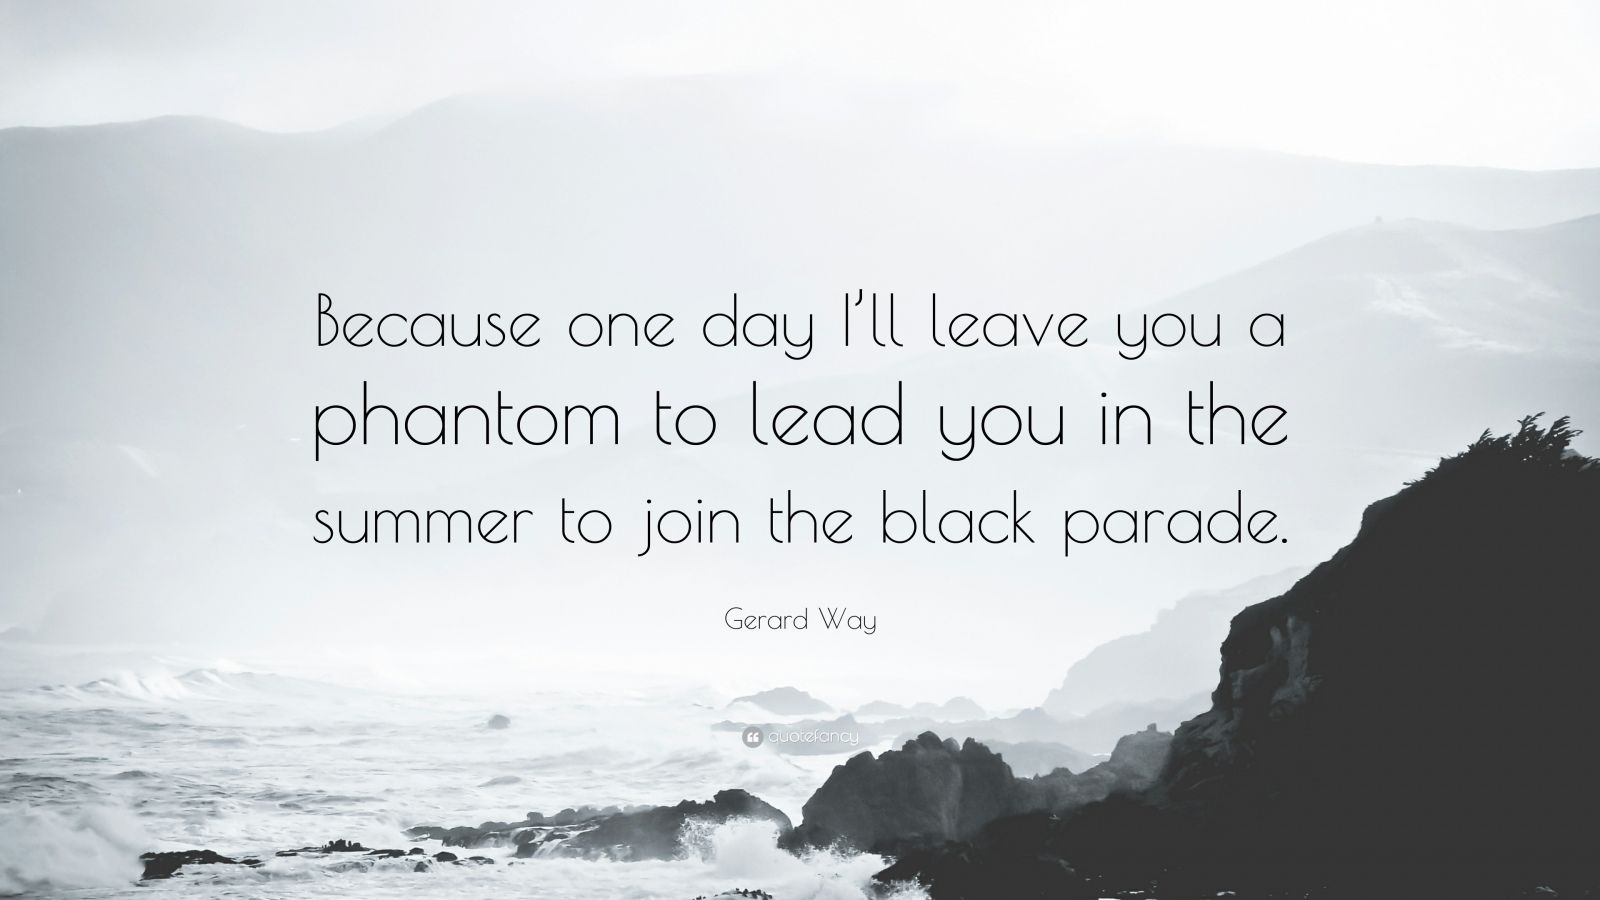 """Gerard Way Quote: """"Because one day I'll leave you a phantom to lead you in the summer to join the black parade."""""""